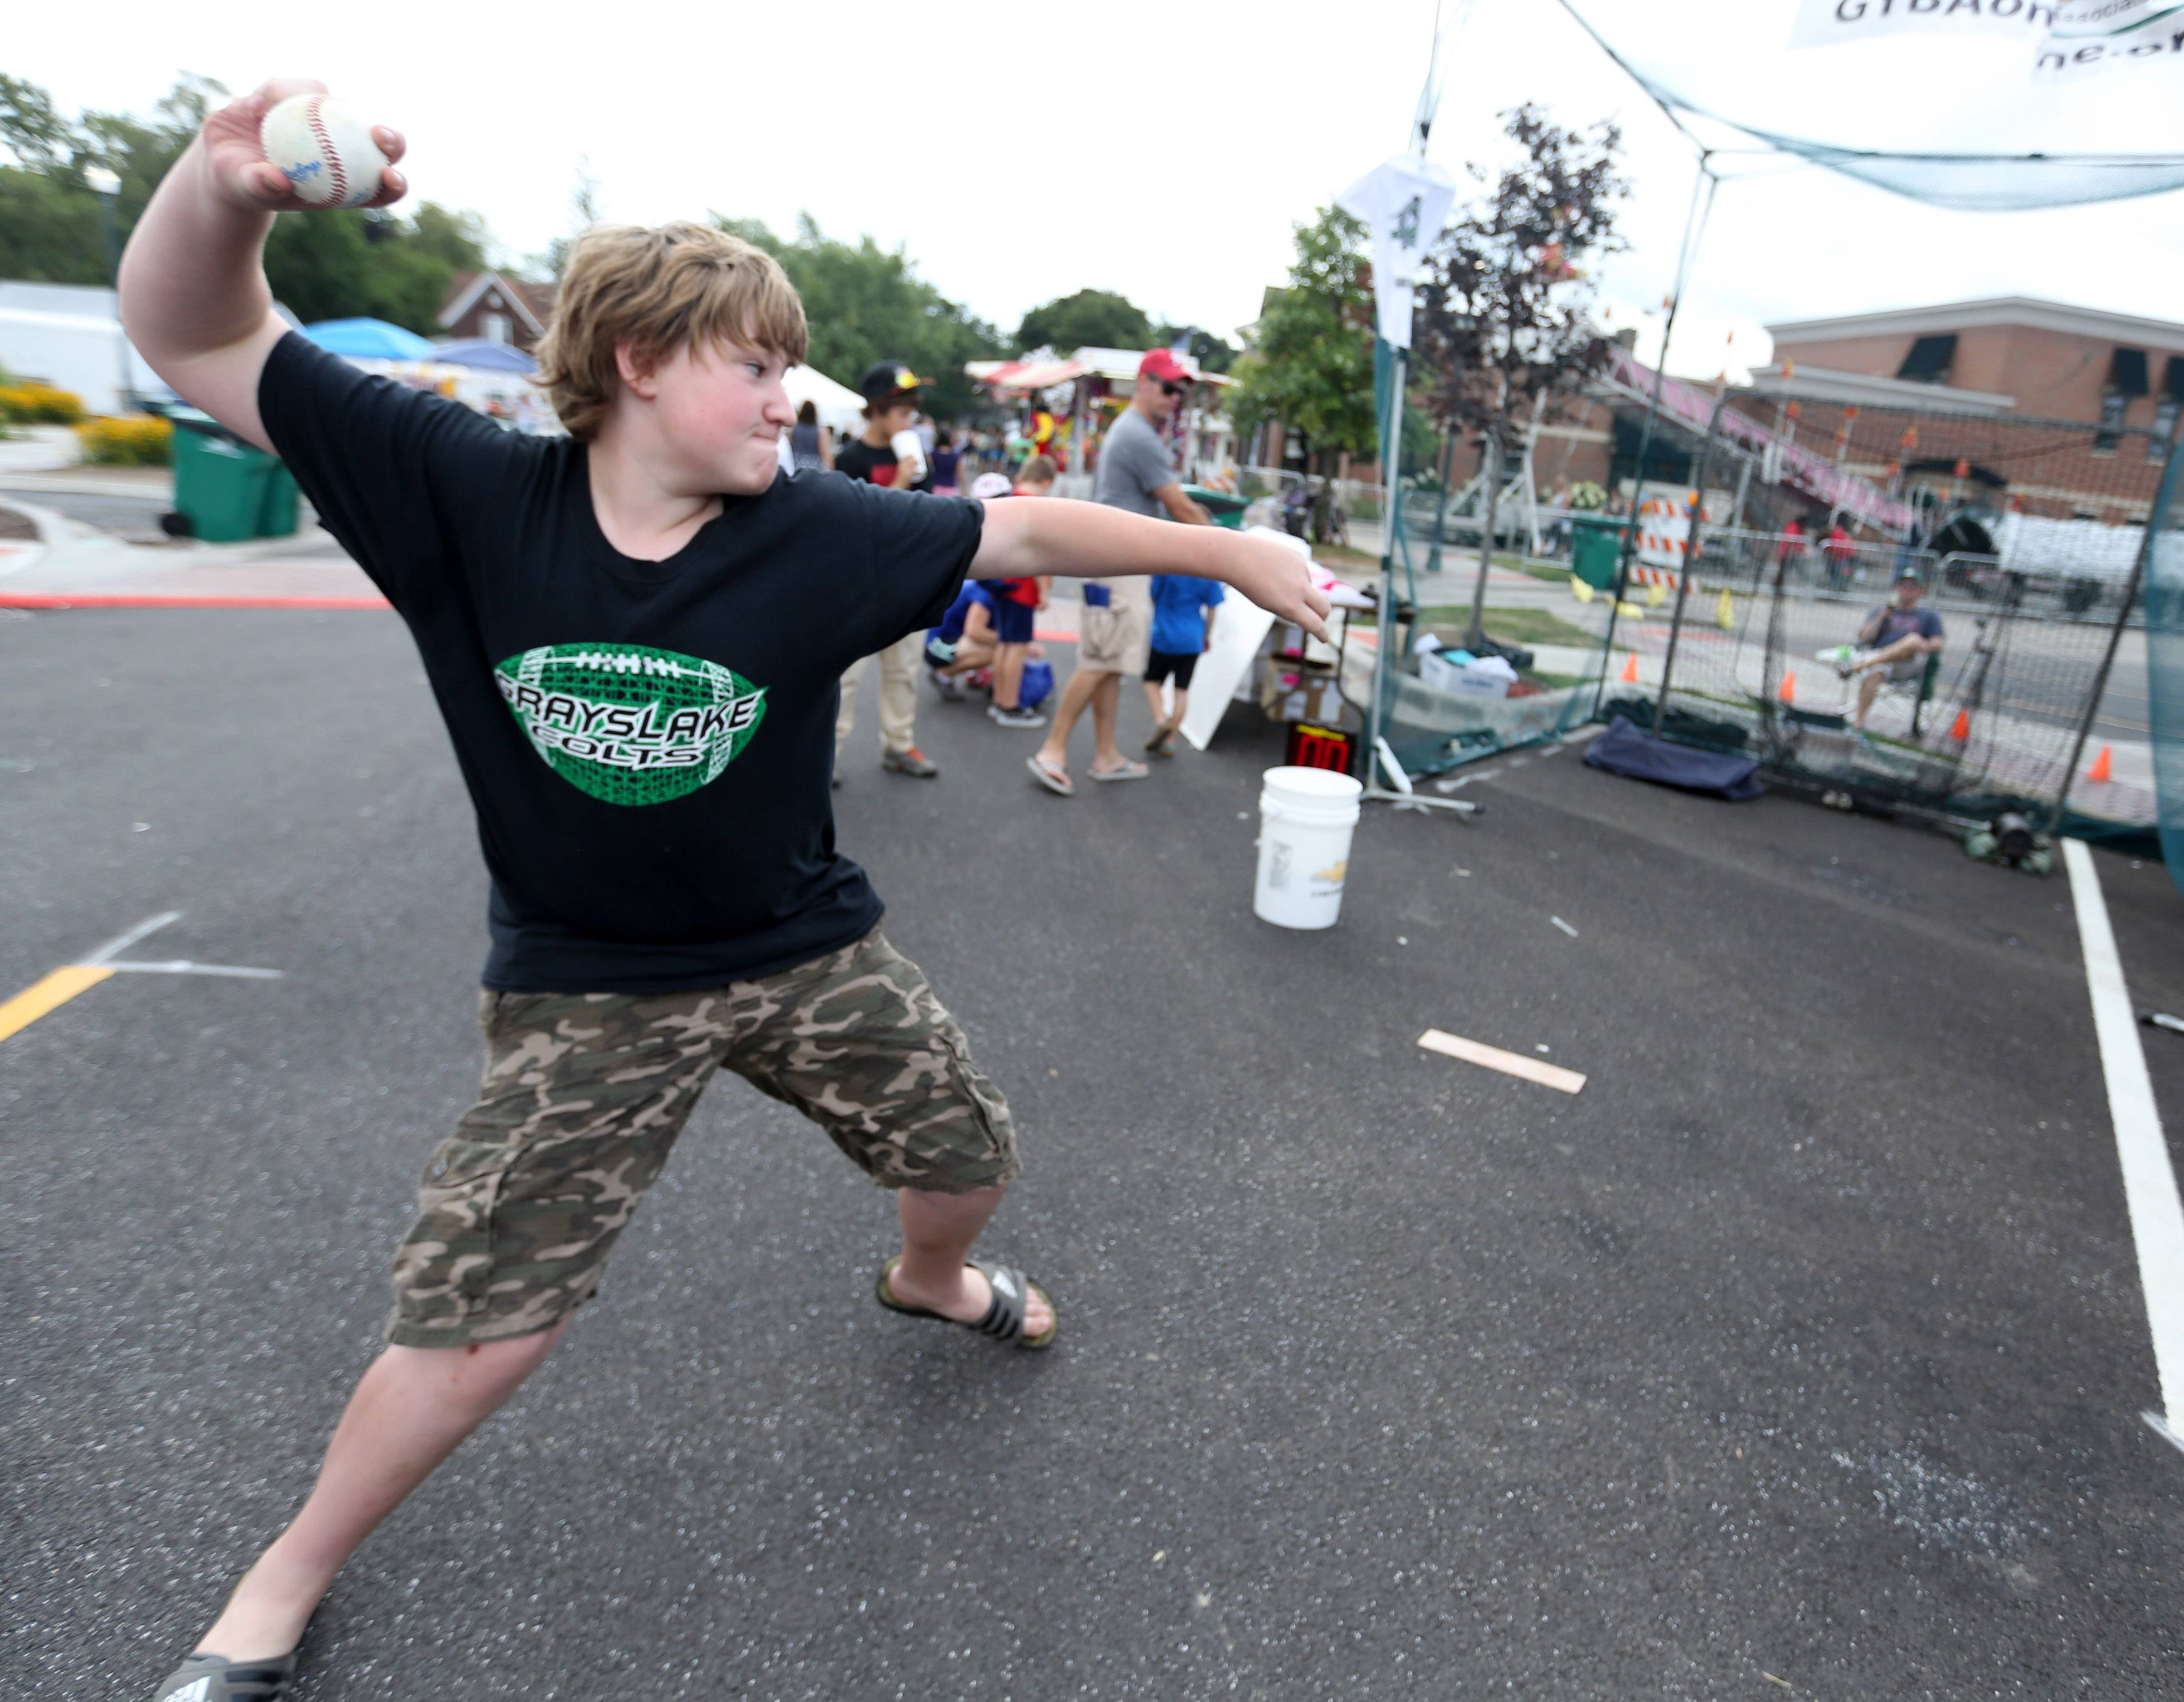 Tristan Gottstein, 13, of Grayslake, throws a 54 mph pitch at Grayslake Youth Baseball Association's pitching booth on Saturday at the second day of Grayslake Summer Days festival in downtown.